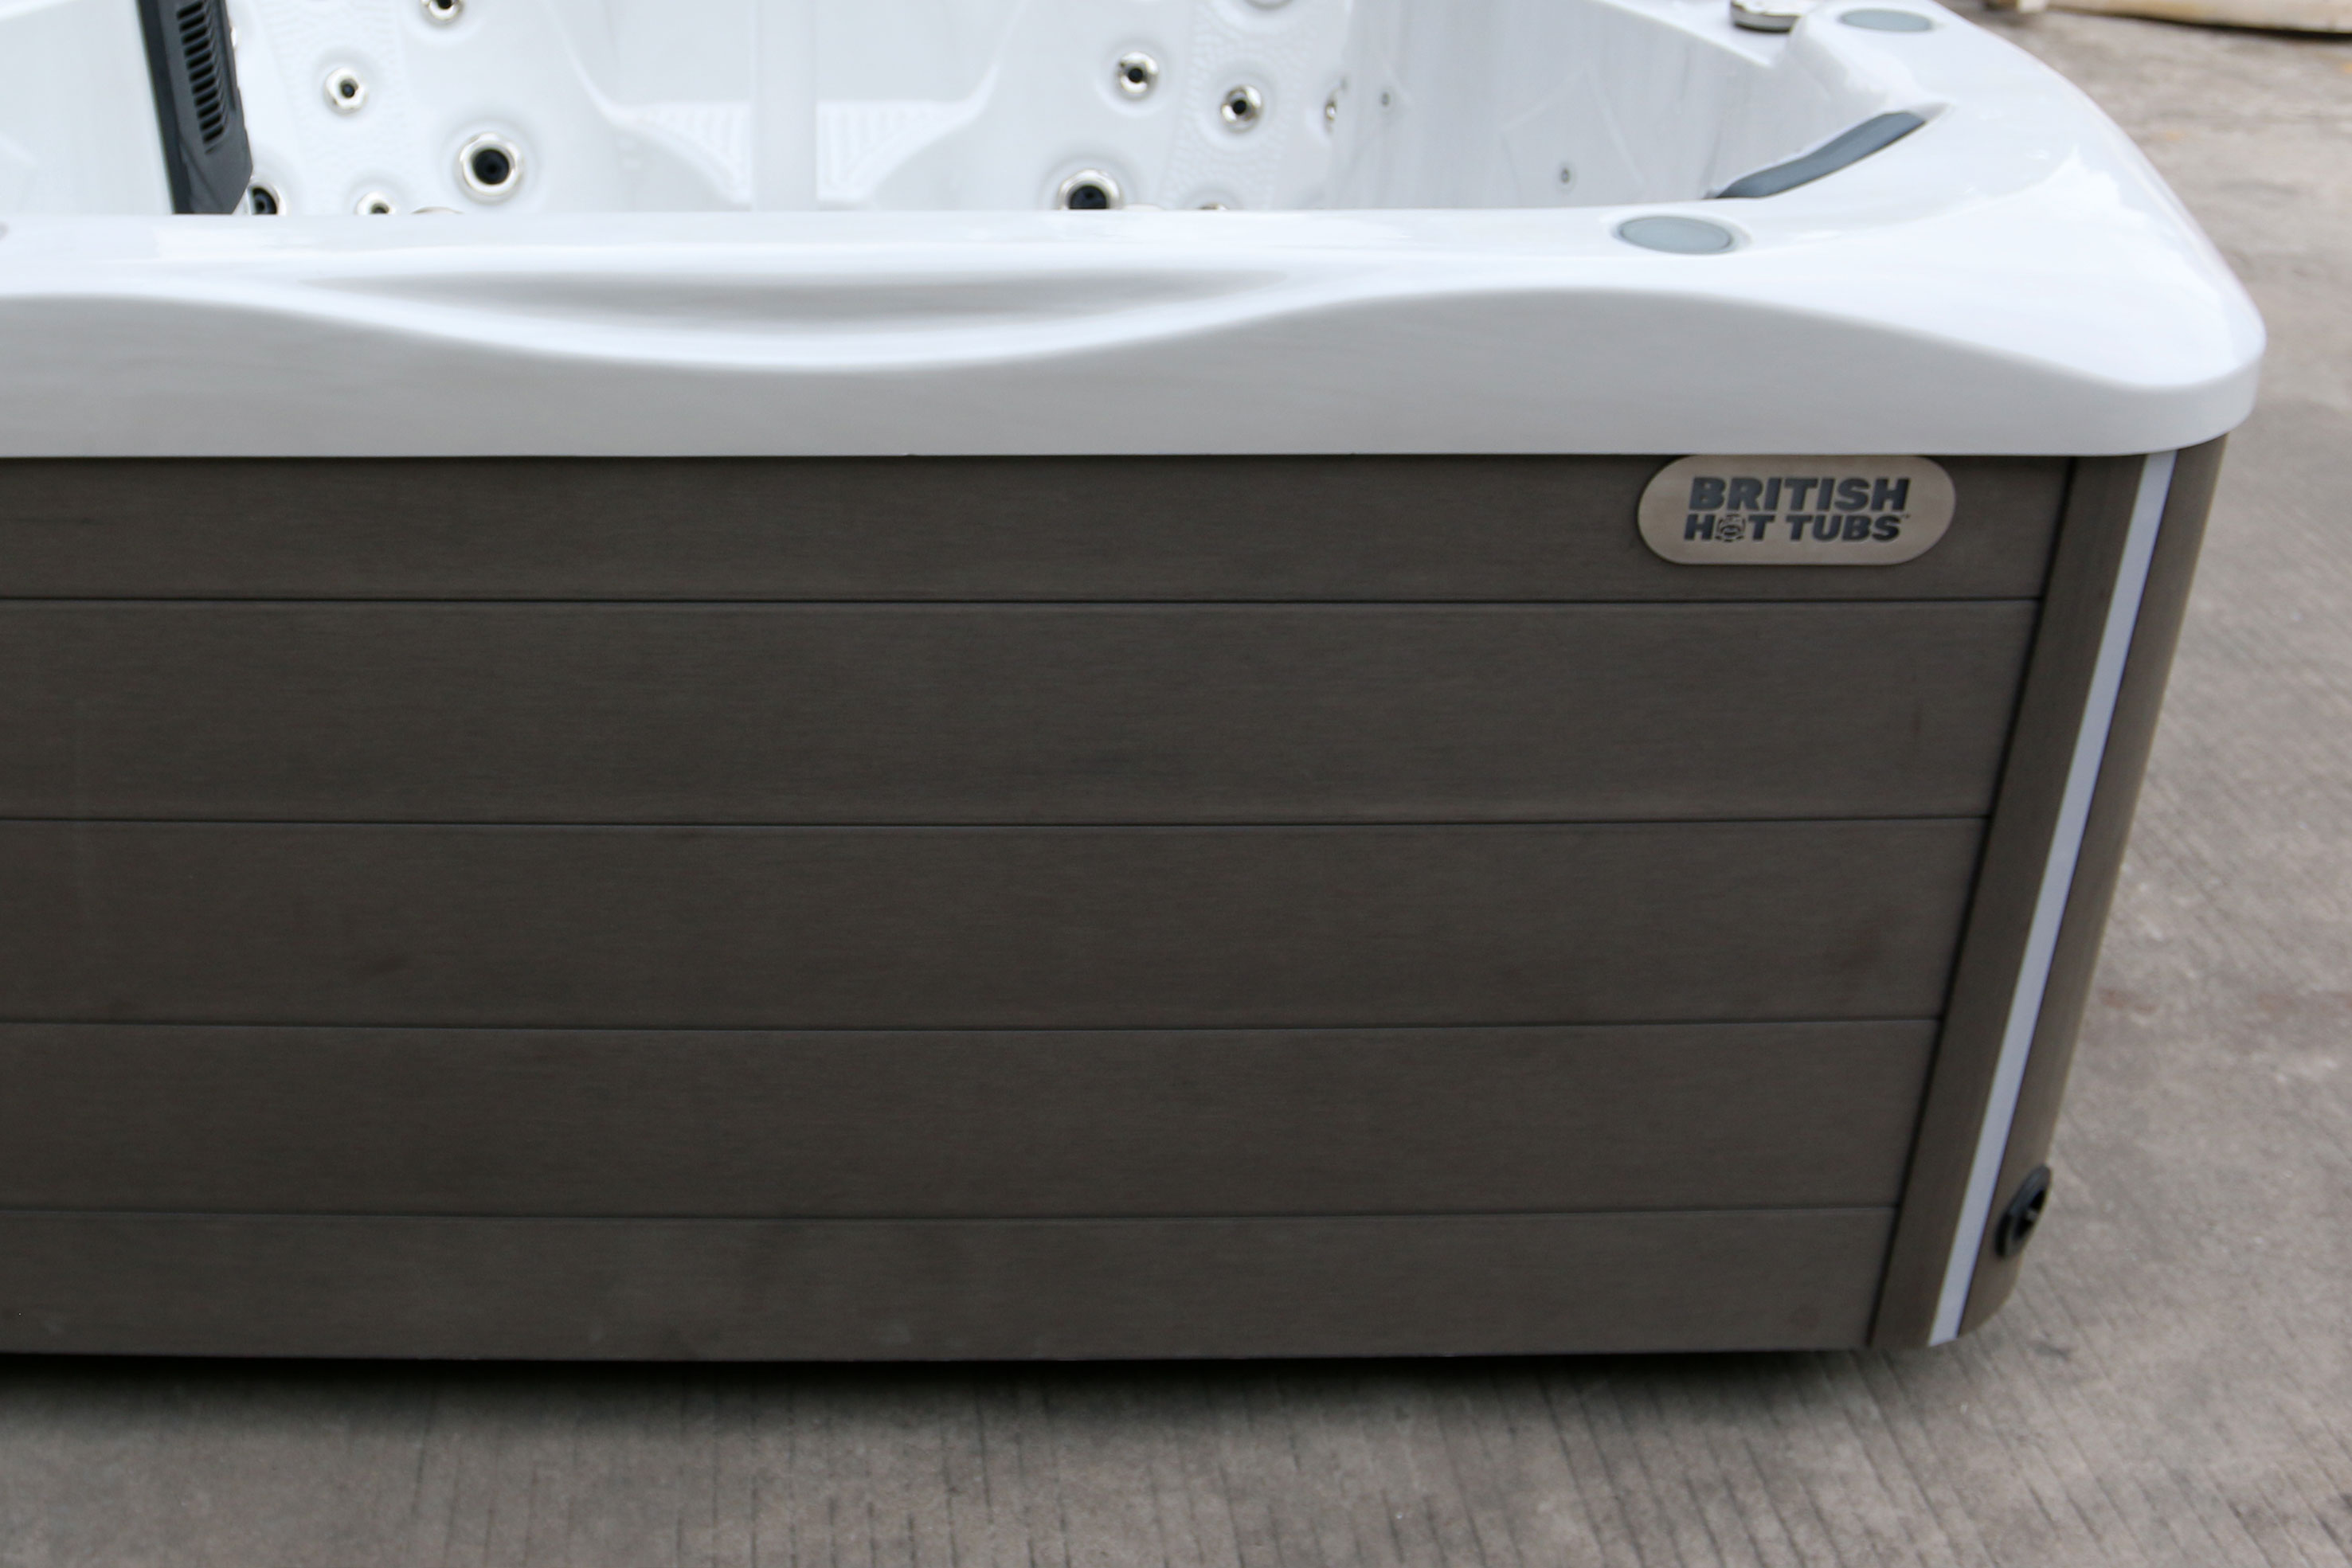 British Hot Tub Feature | Vinyl Synthetic Cabinet